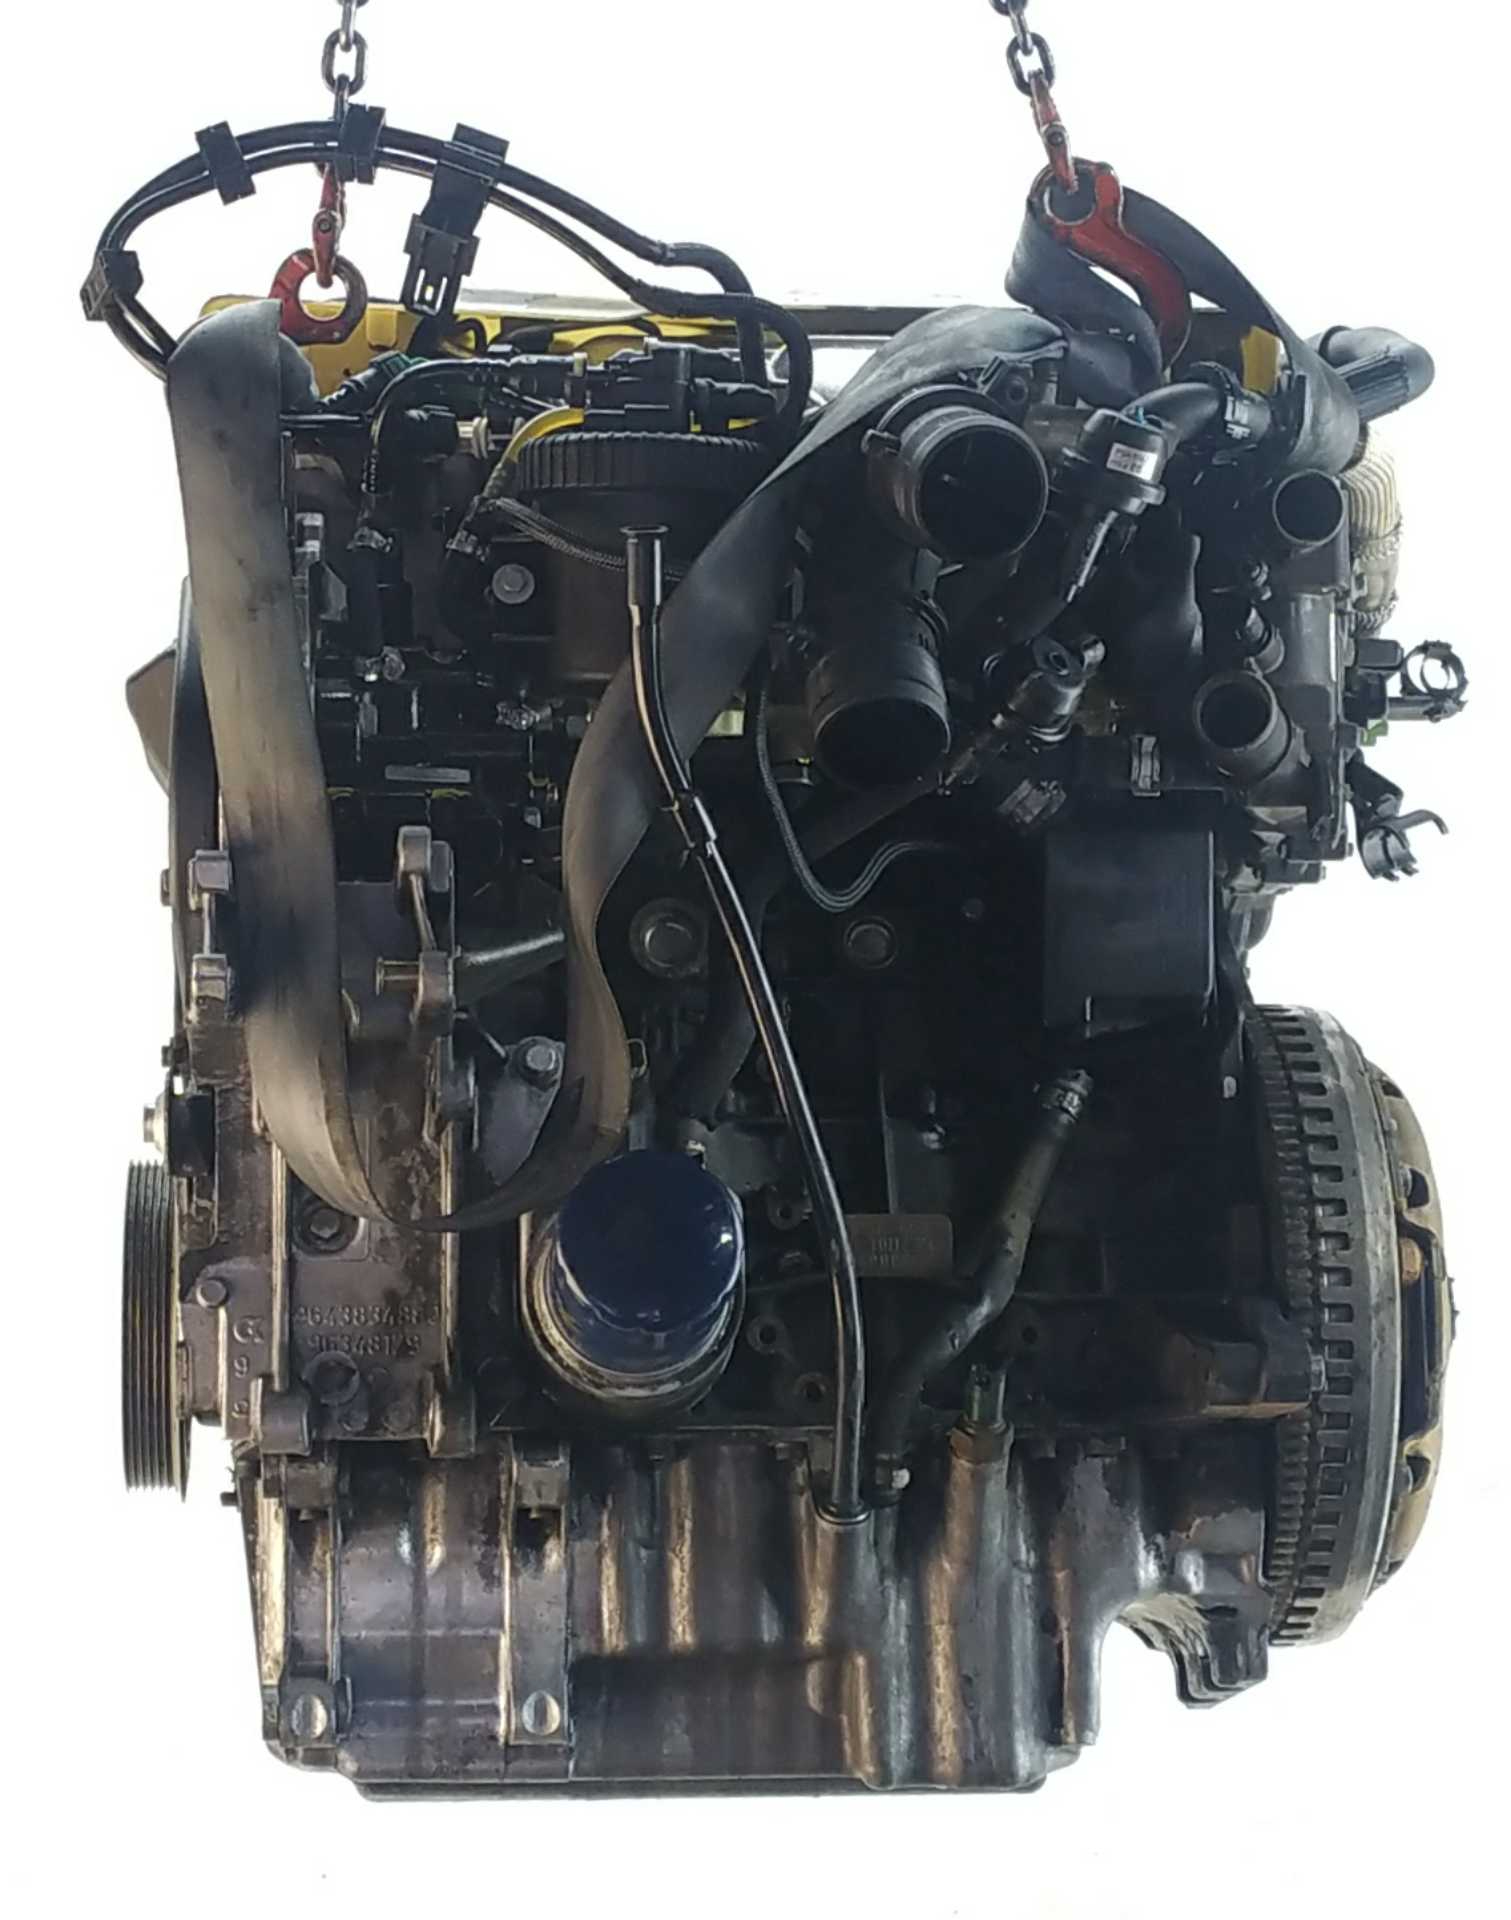 MOTOR COMPLETO PEUGEOT 406 Coupé 2.2 HDI (98 KW / 133 CV) (03.2000 - 12.2004)